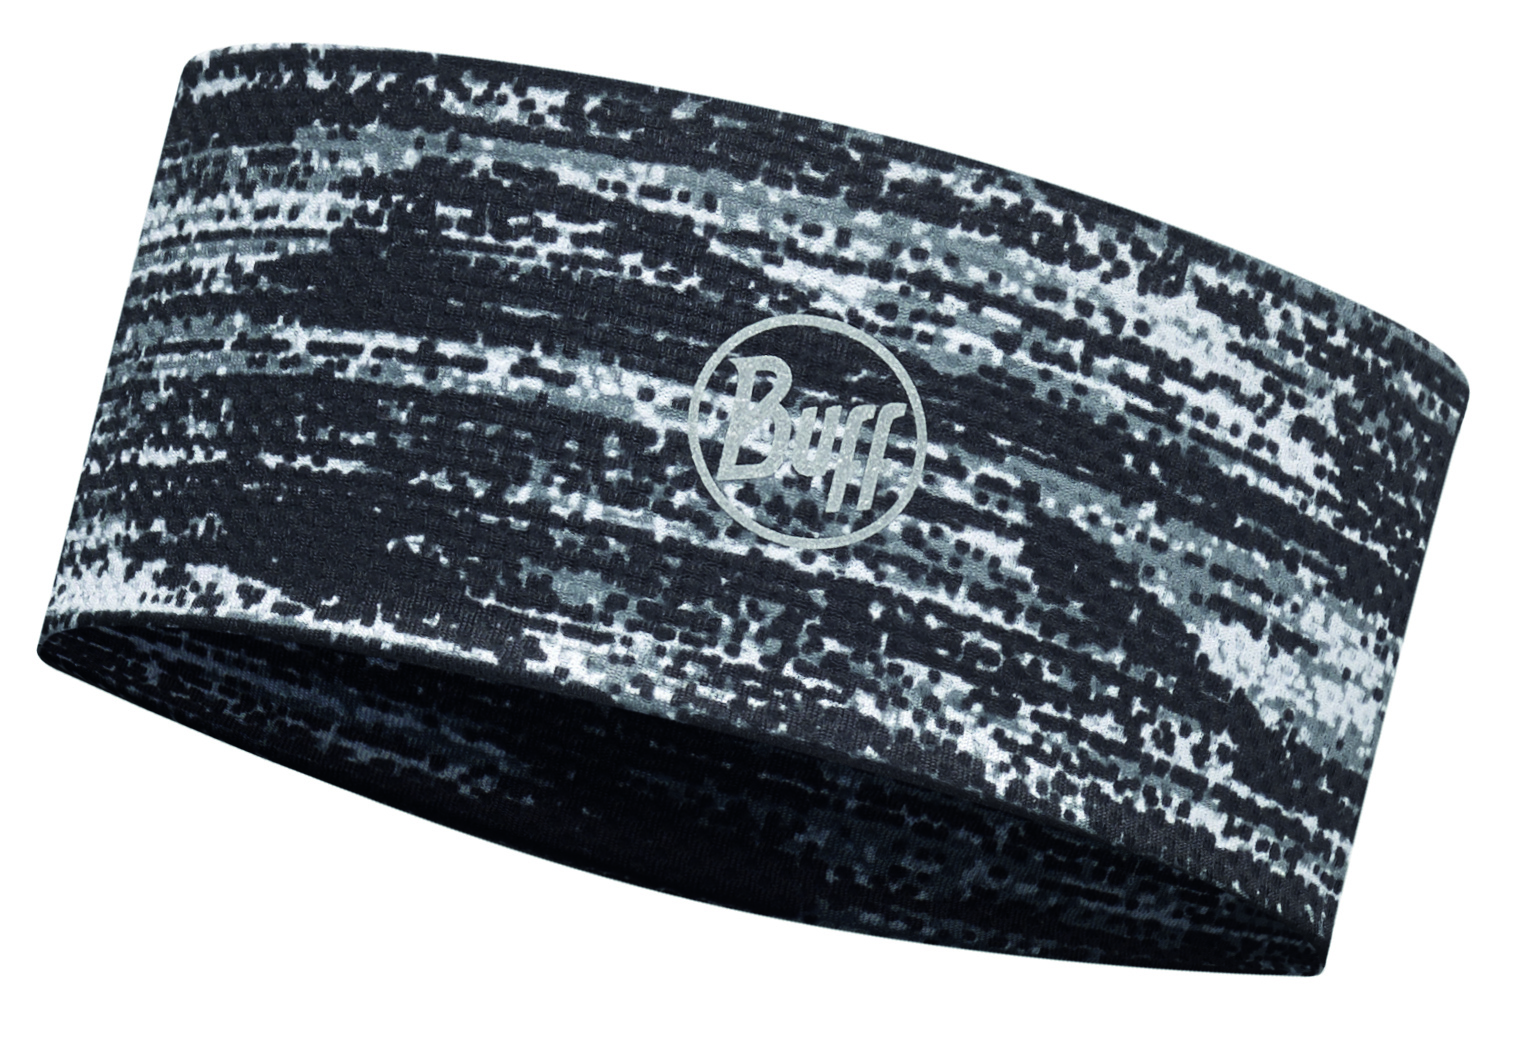 Повязка BUFF Headband R-INTERFERENCE GARGOYLE Банданы и шарфы Buff ® 1312856  - купить со скидкой